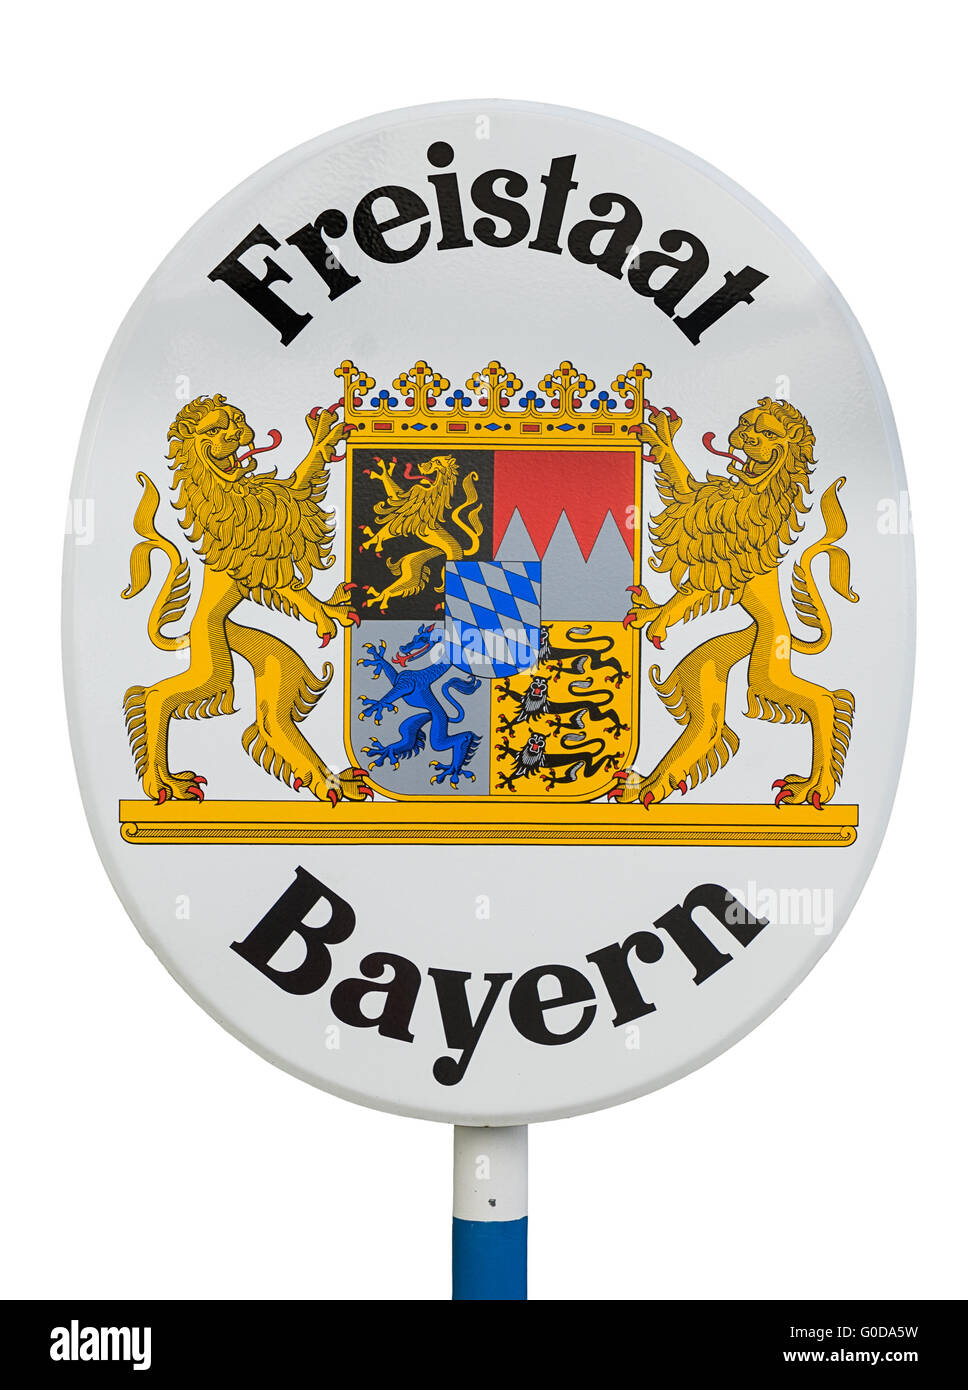 Sign free state Bavaria - Stock Image